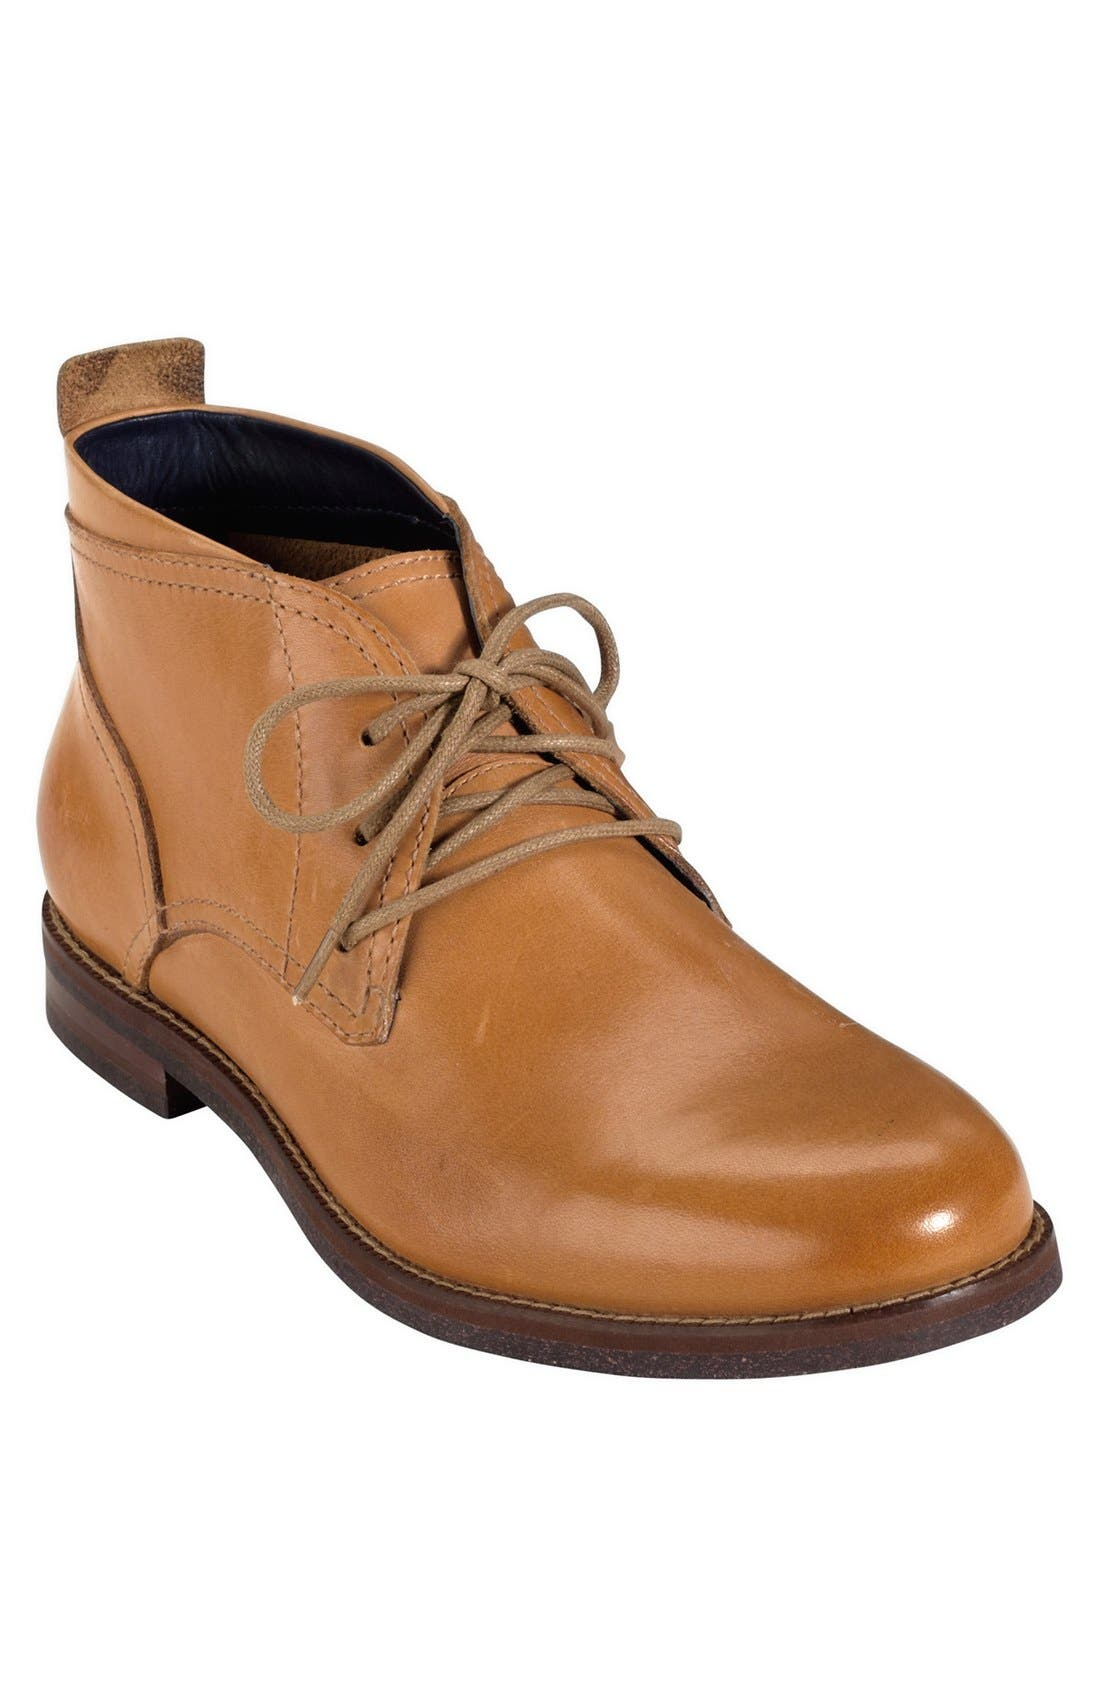 Alternate Image 1 Selected - Cole Haan 'Air Charles' Chukka Boot